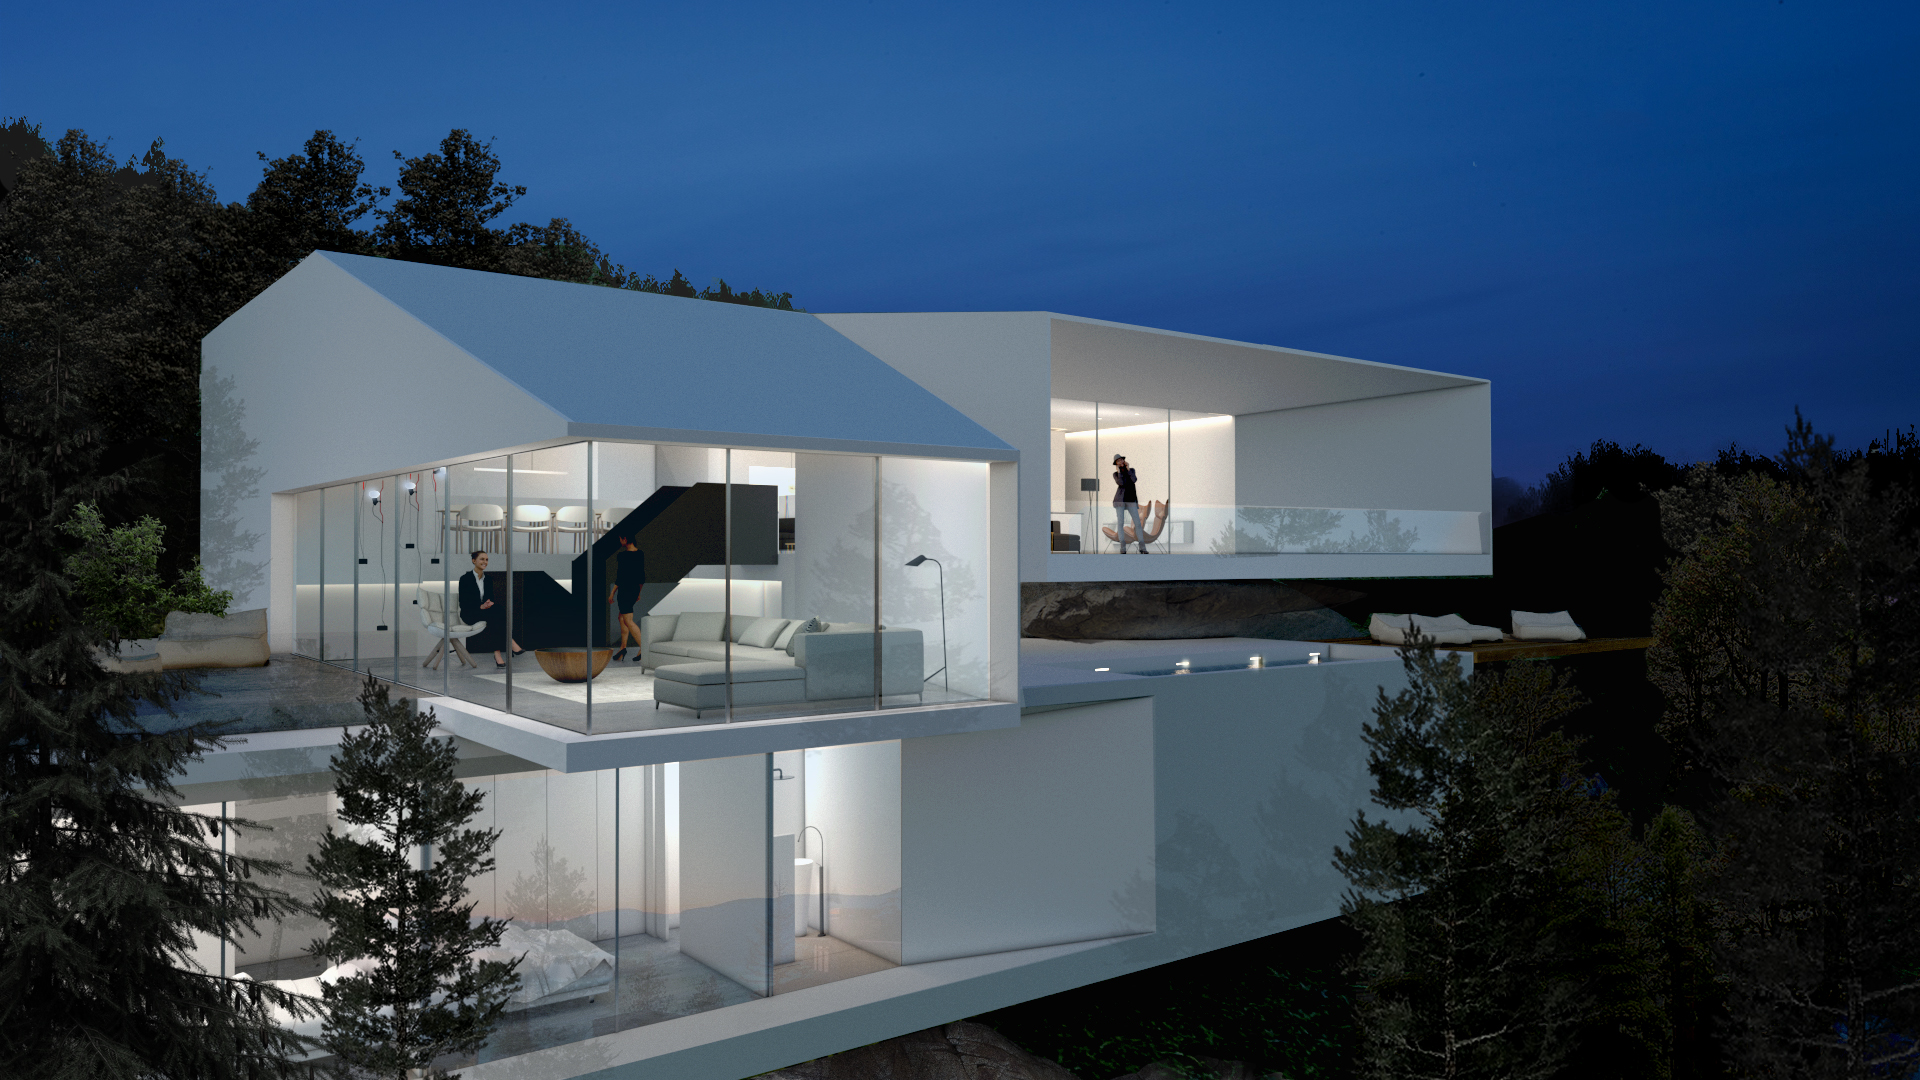 a minimalist White House surrounded by nature